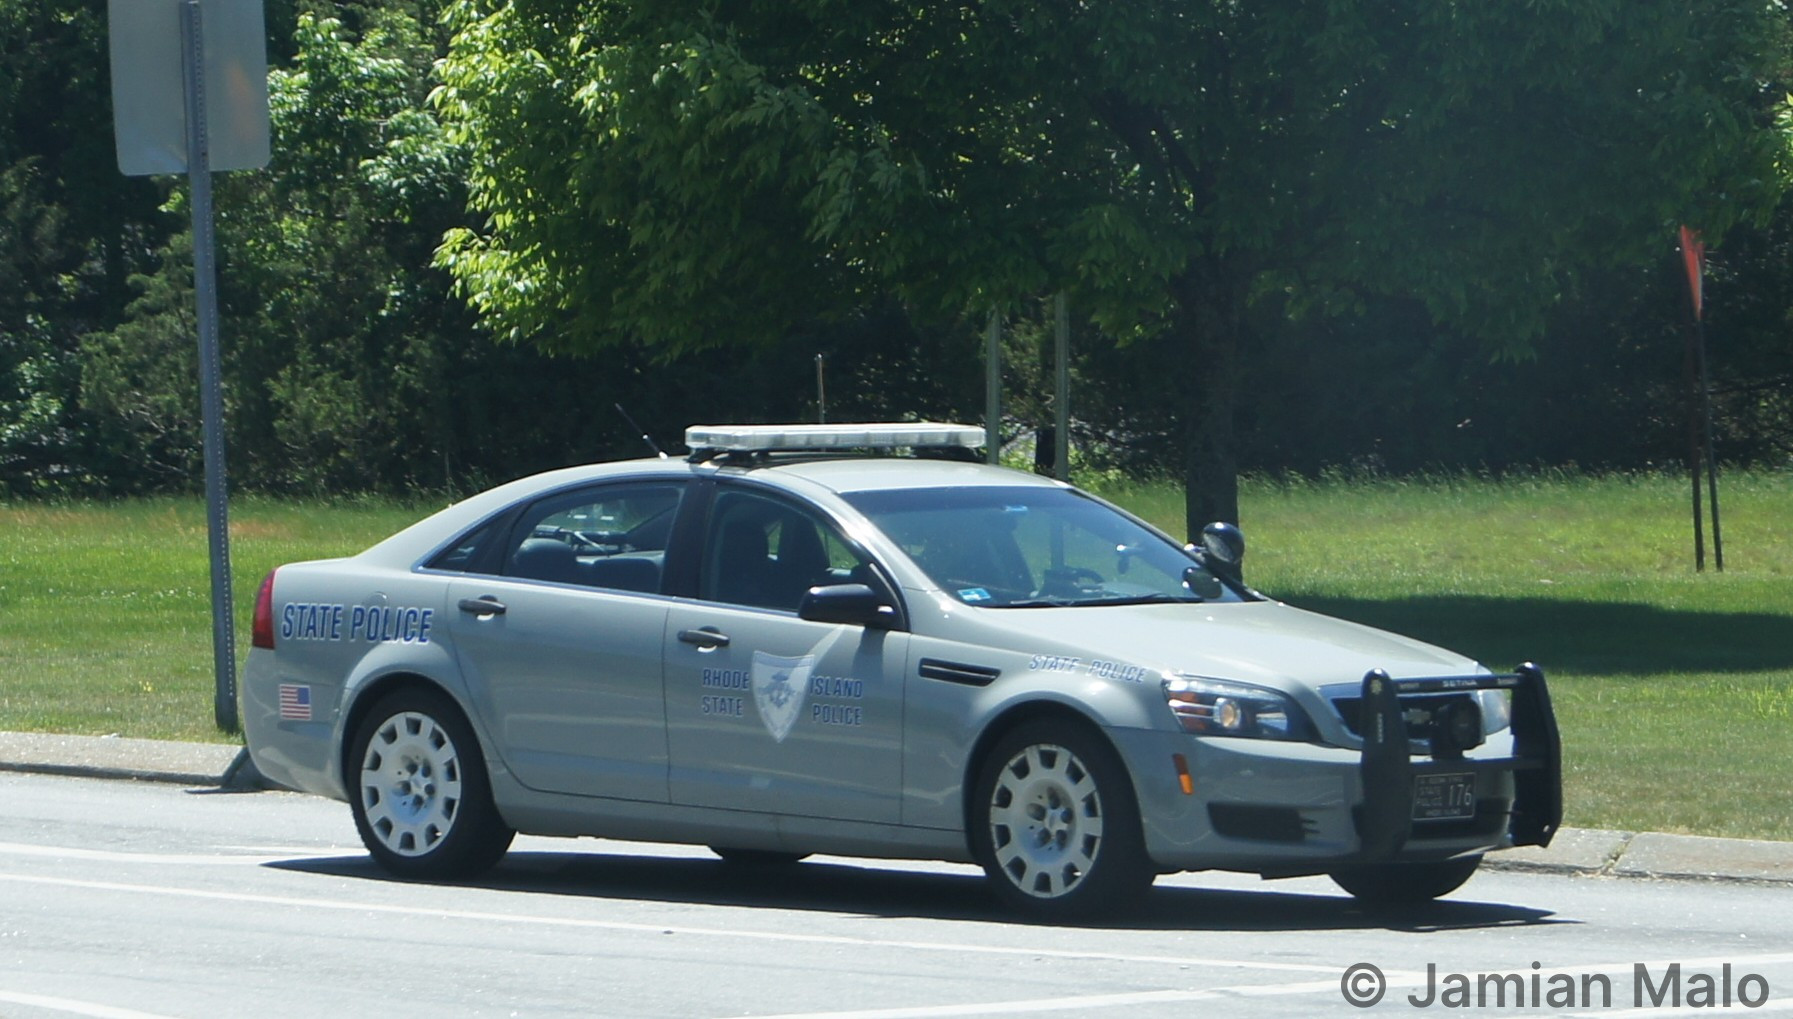 A photo  of Rhode Island State Police             Cruiser 176, a 2013 Chevrolet Caprice             taken by Jamian Malo